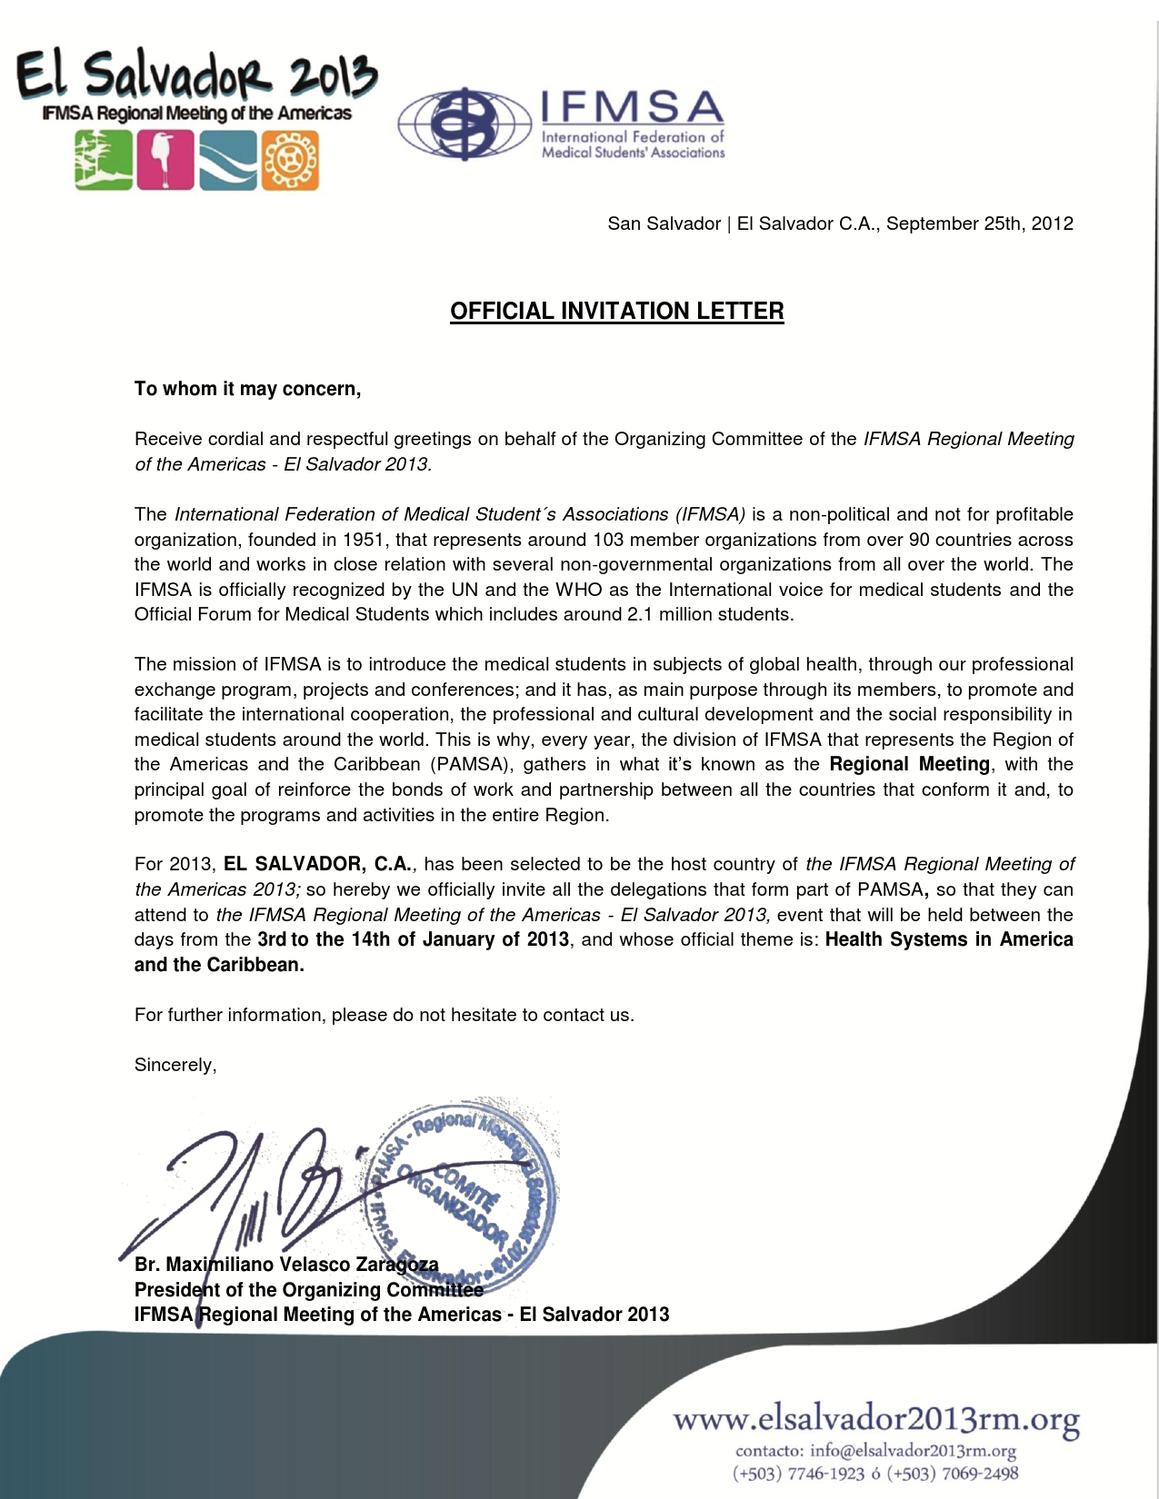 Official Invitation Letter by PAMSA RM El Salvador 2013 - issuu